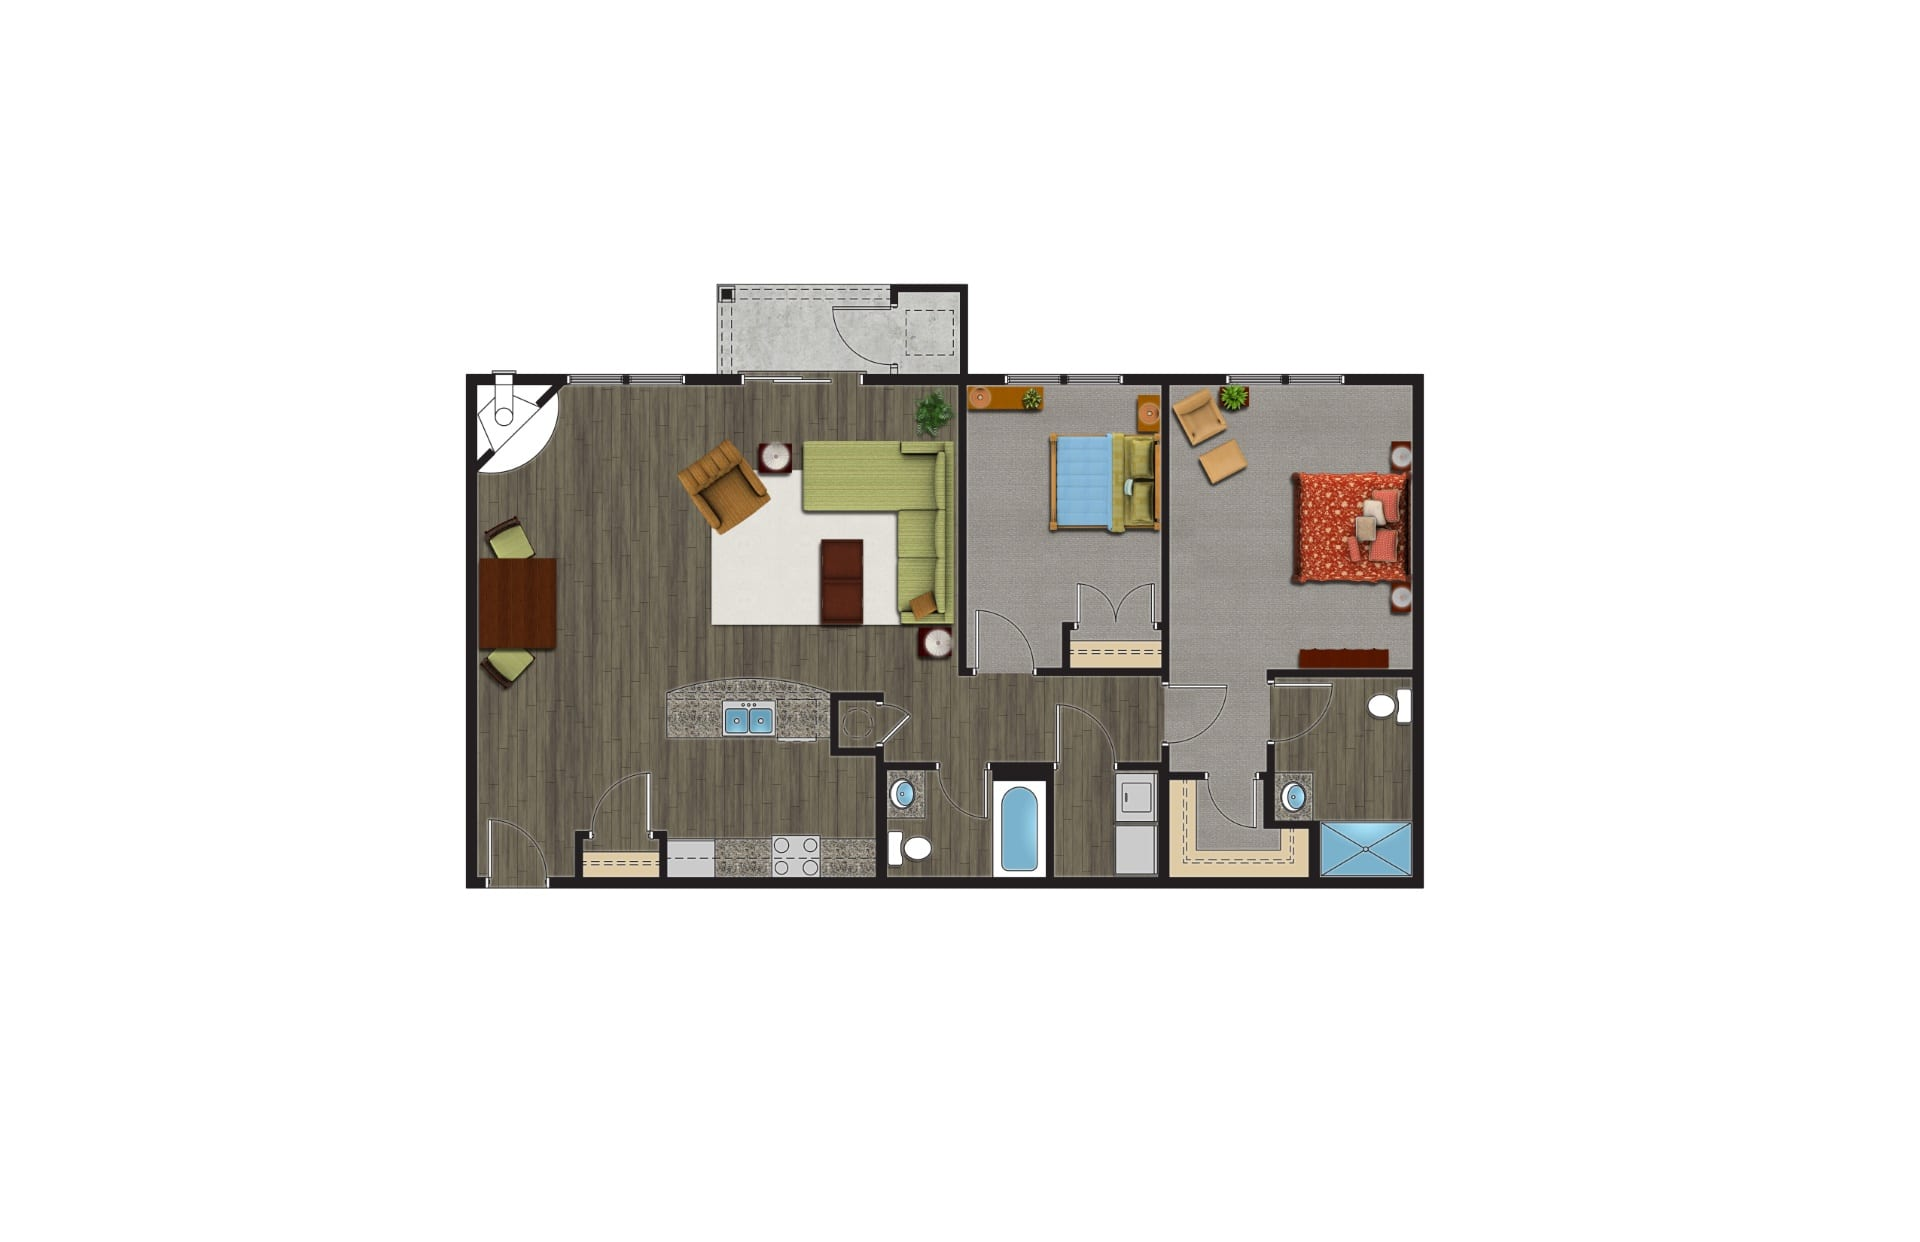 The Adirondack Floor Plan, Luxury Apartments with Garages for rent. A 2 Bedroom Apartment in Orchard Park NY are pet friendly apartments.